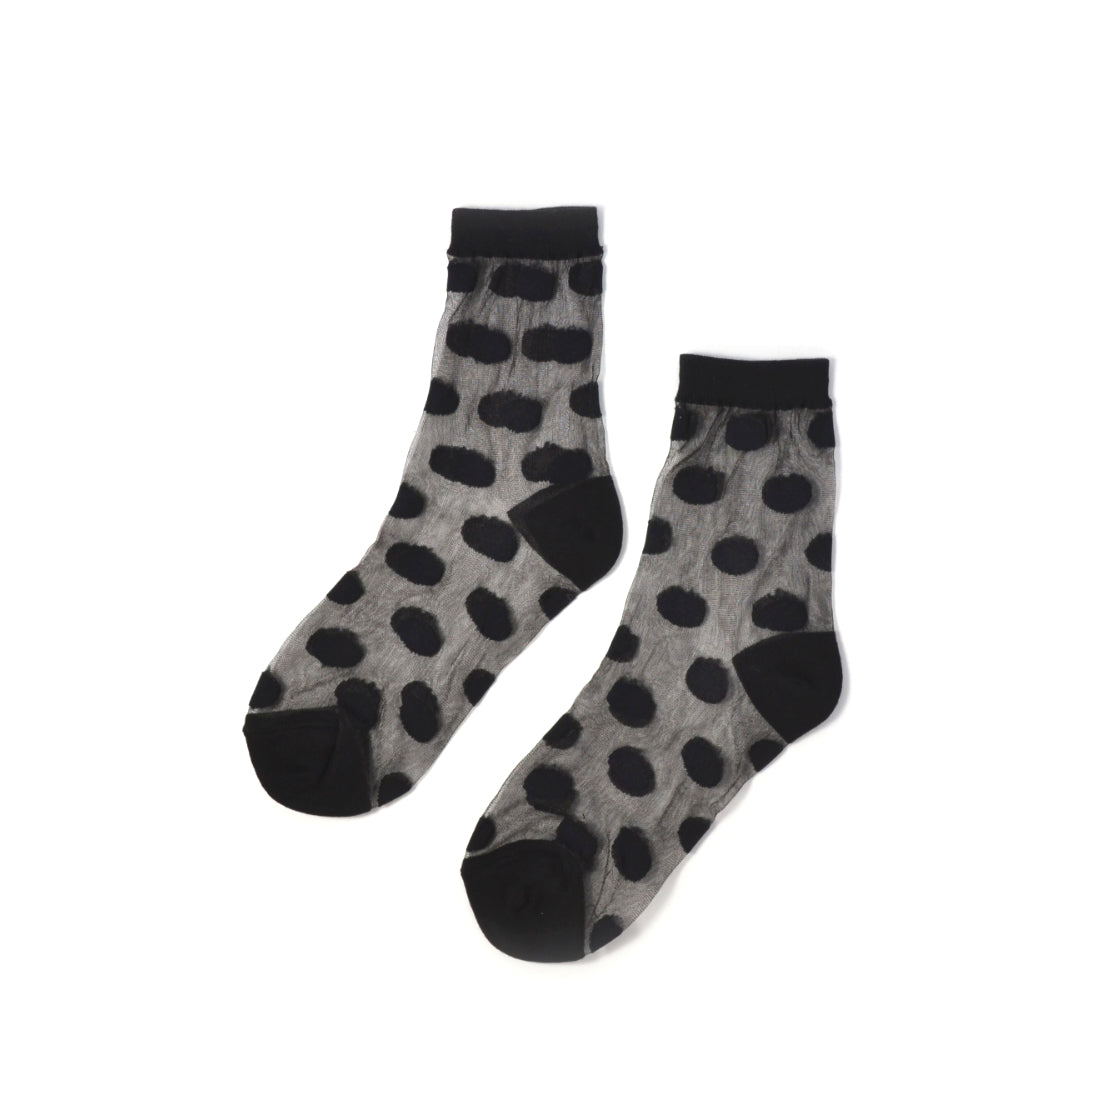 women's polka dot sheer crew socks in black // hello shiso hair accessories for girls